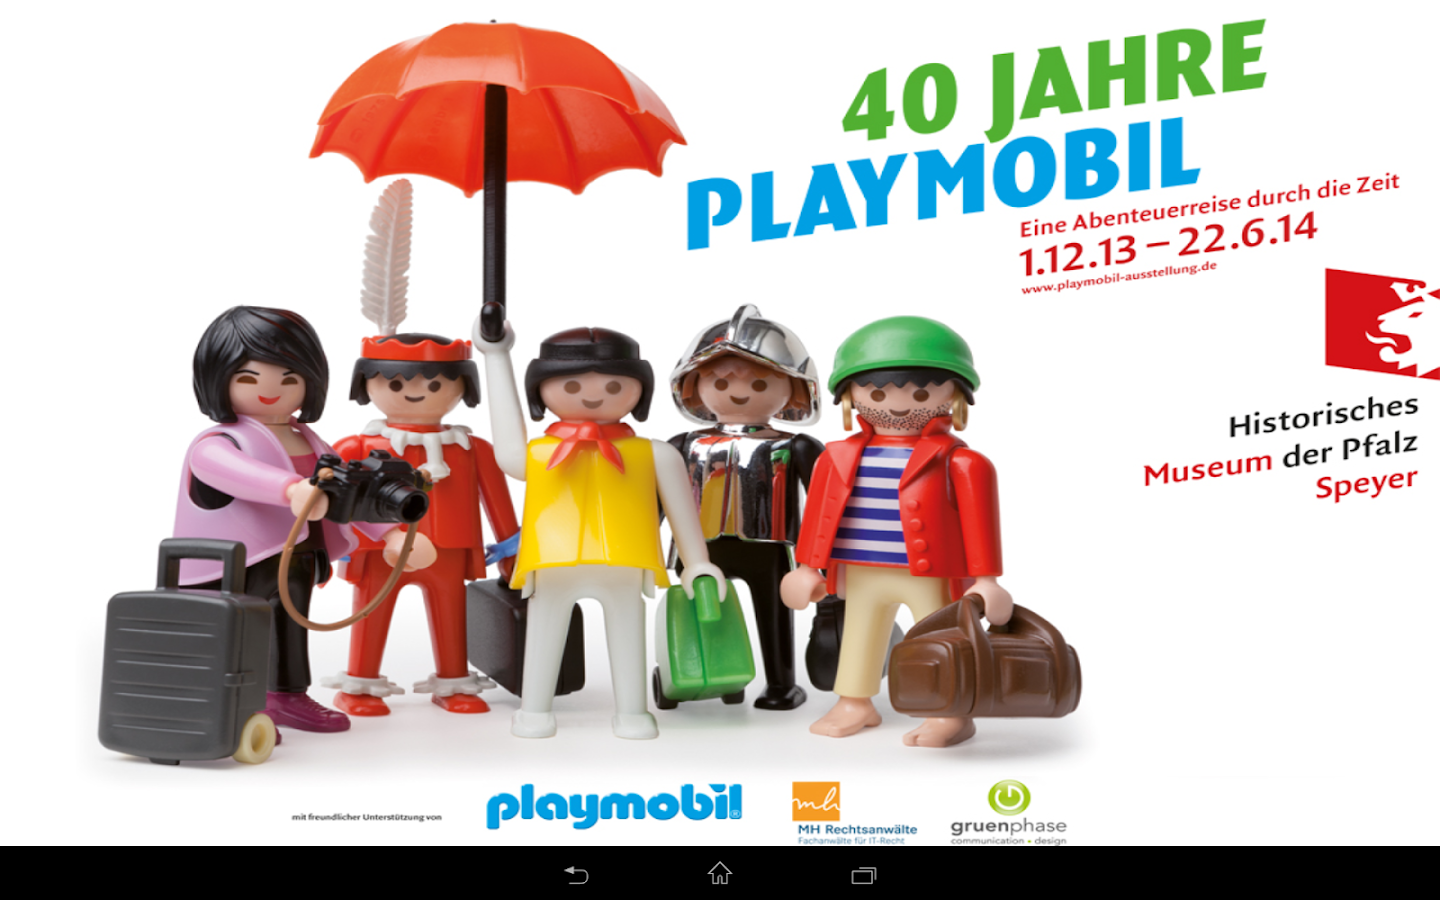 PLAYMOBIL 40 Jahre- screenshot